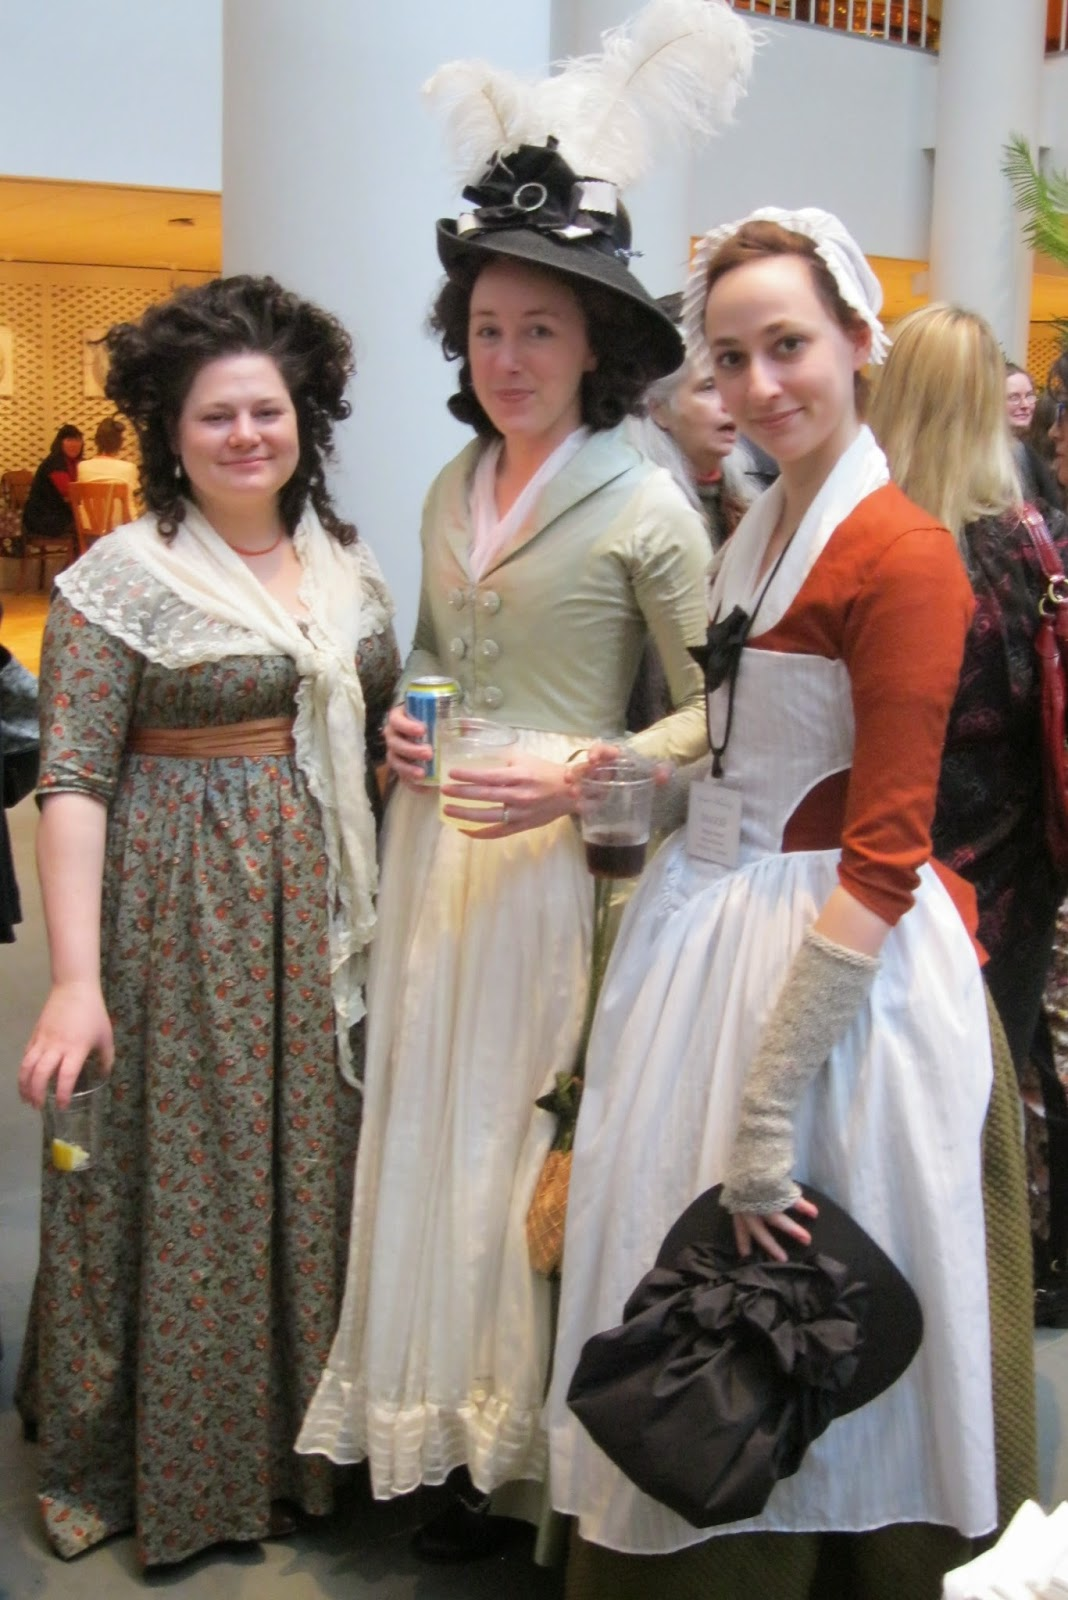 A Fashionable Birthday Party in Colonial Williamsburg  sc 1 st  Two Nerdy History Girls & Two Nerdy History Girls: March 2014